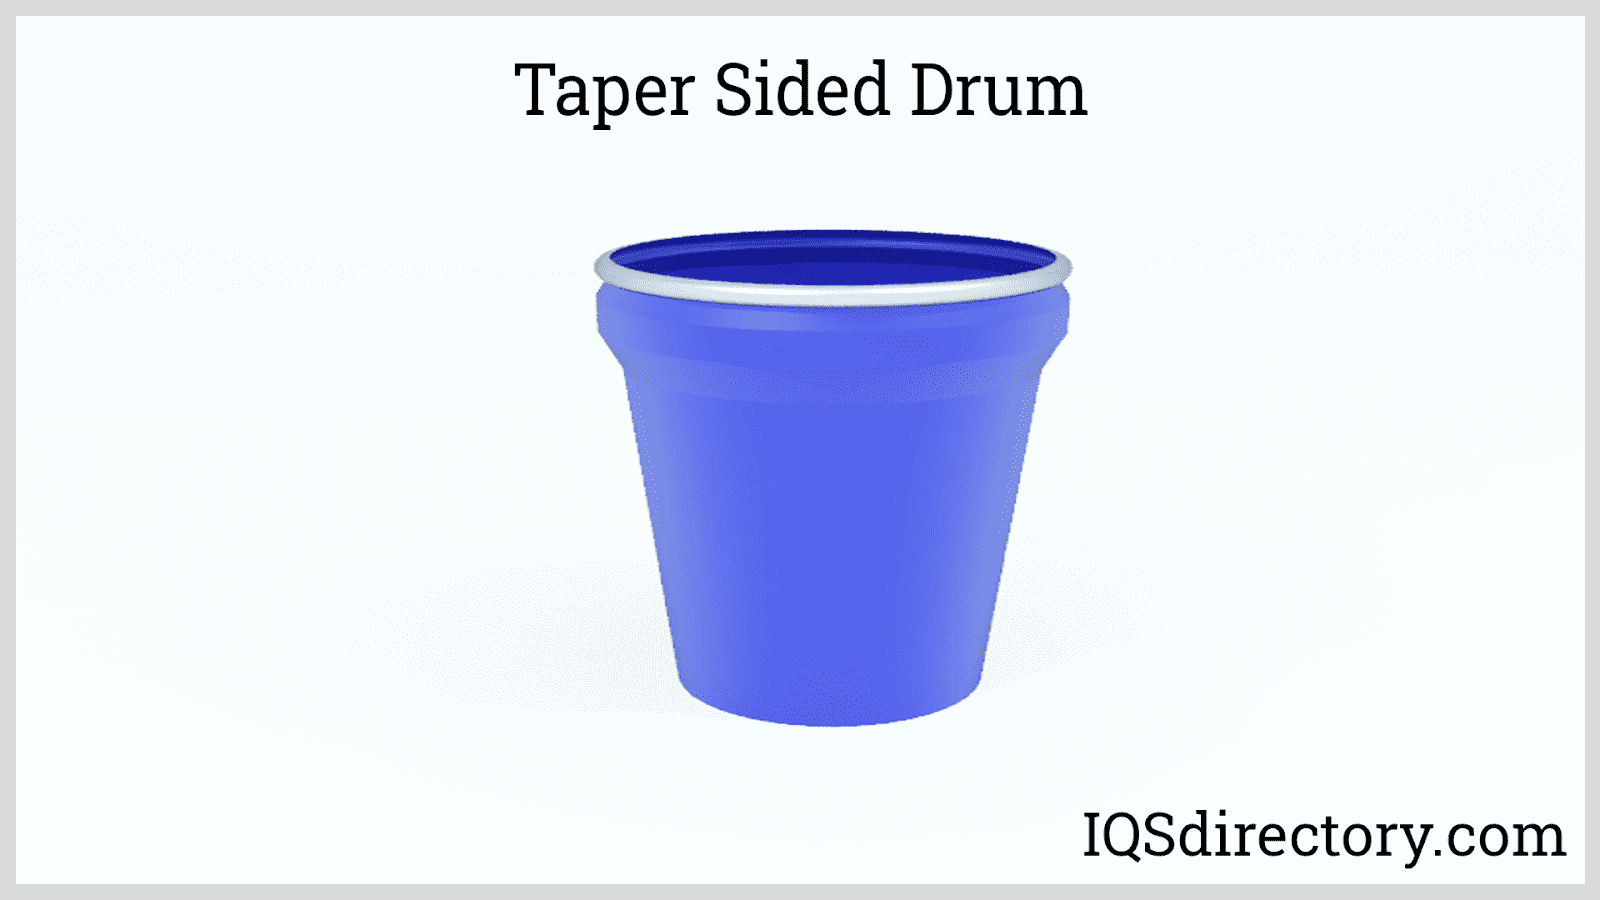 Taper Sided Drum